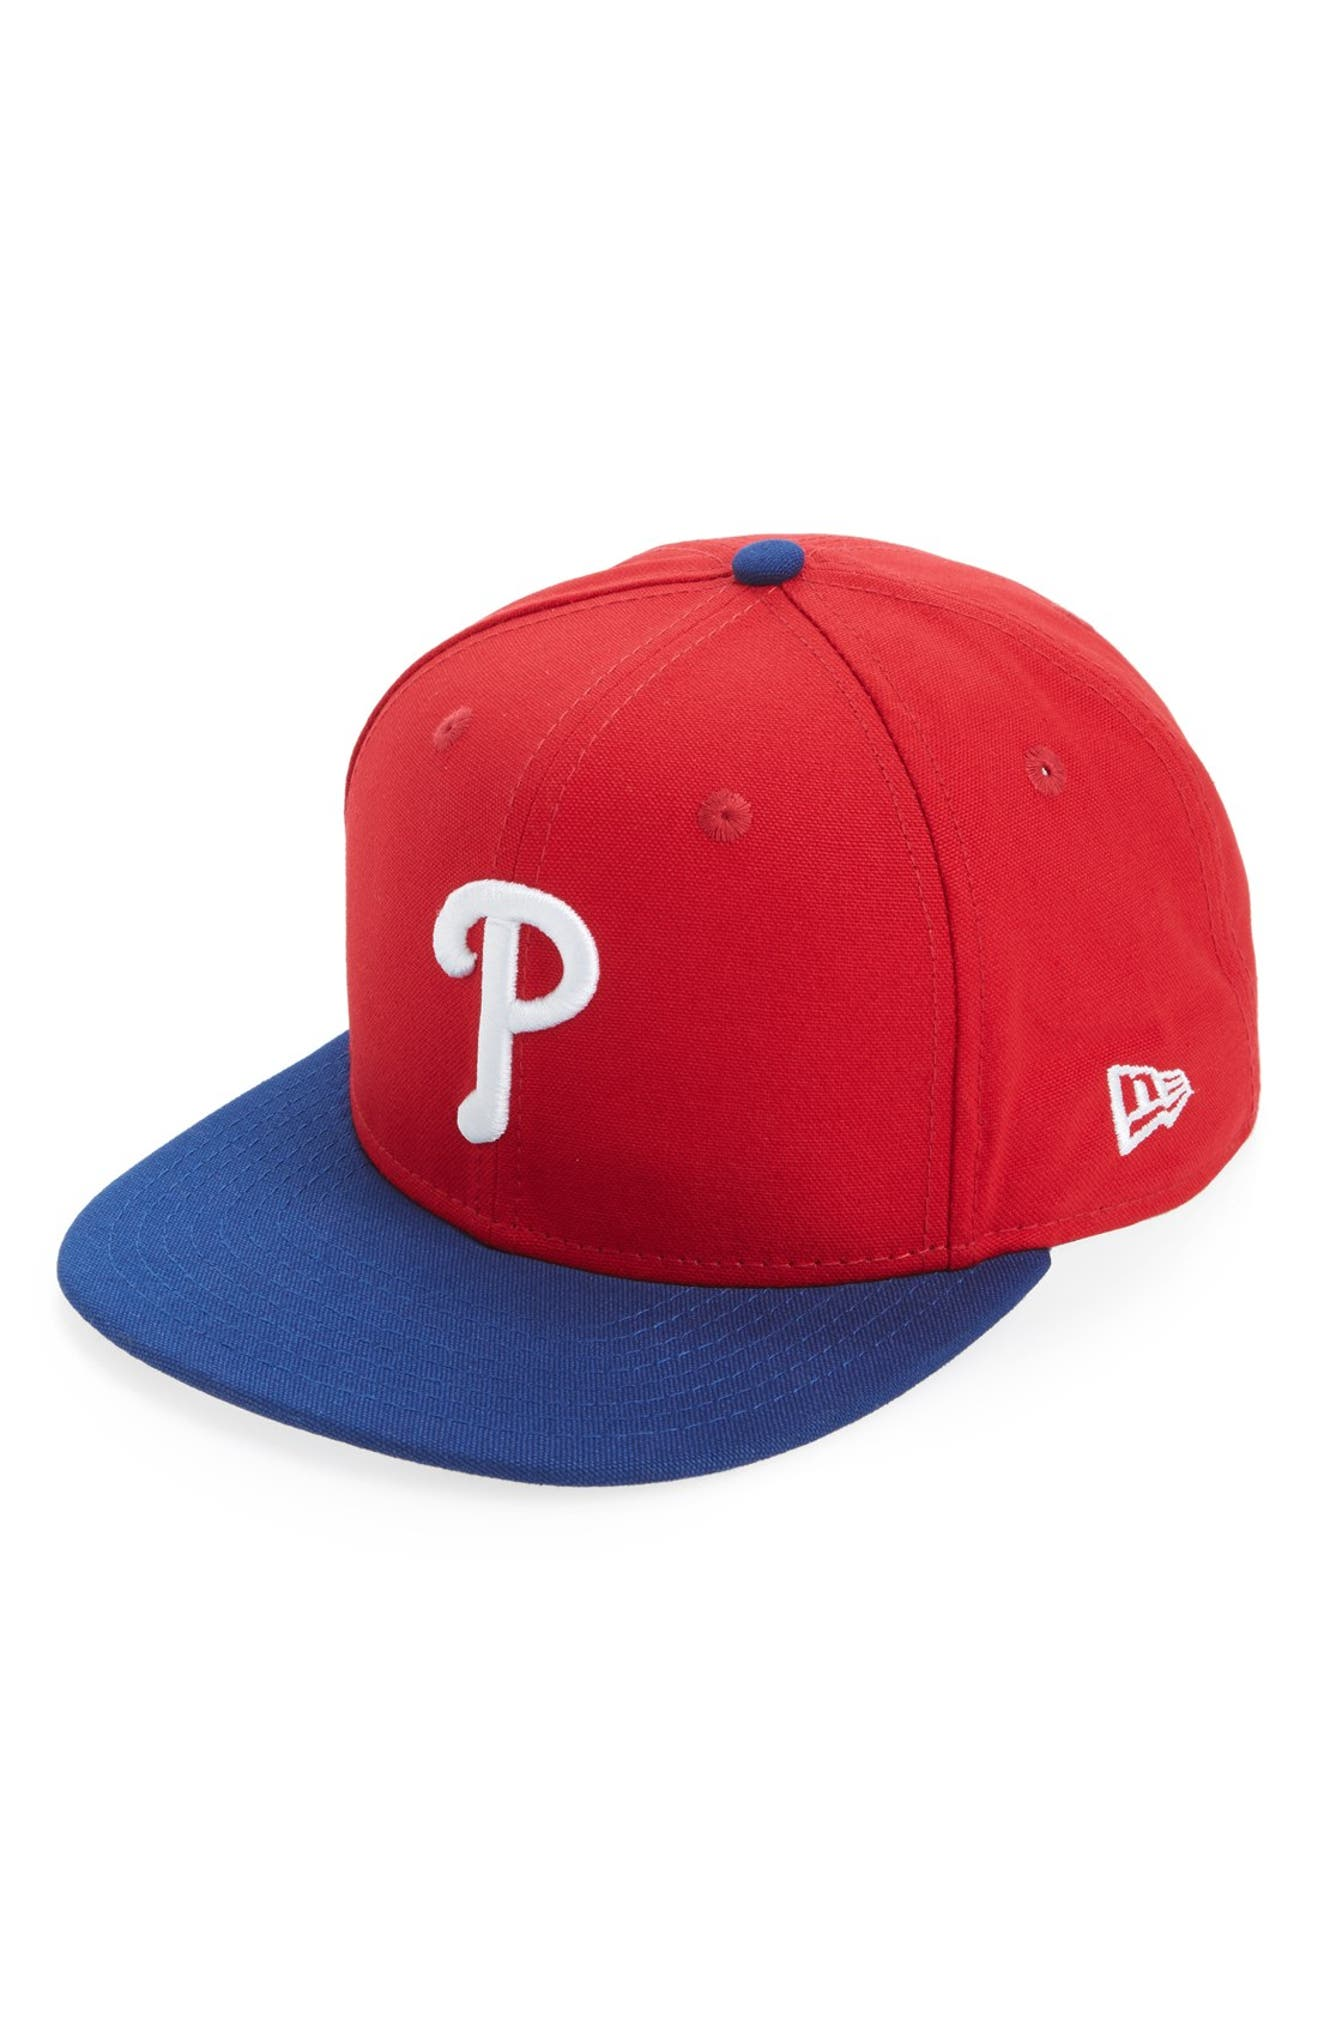 New Era Cap  Shore Snapper - Philadelphia Phillies  Snapback Baseball Cap  ea9c5d8745d3